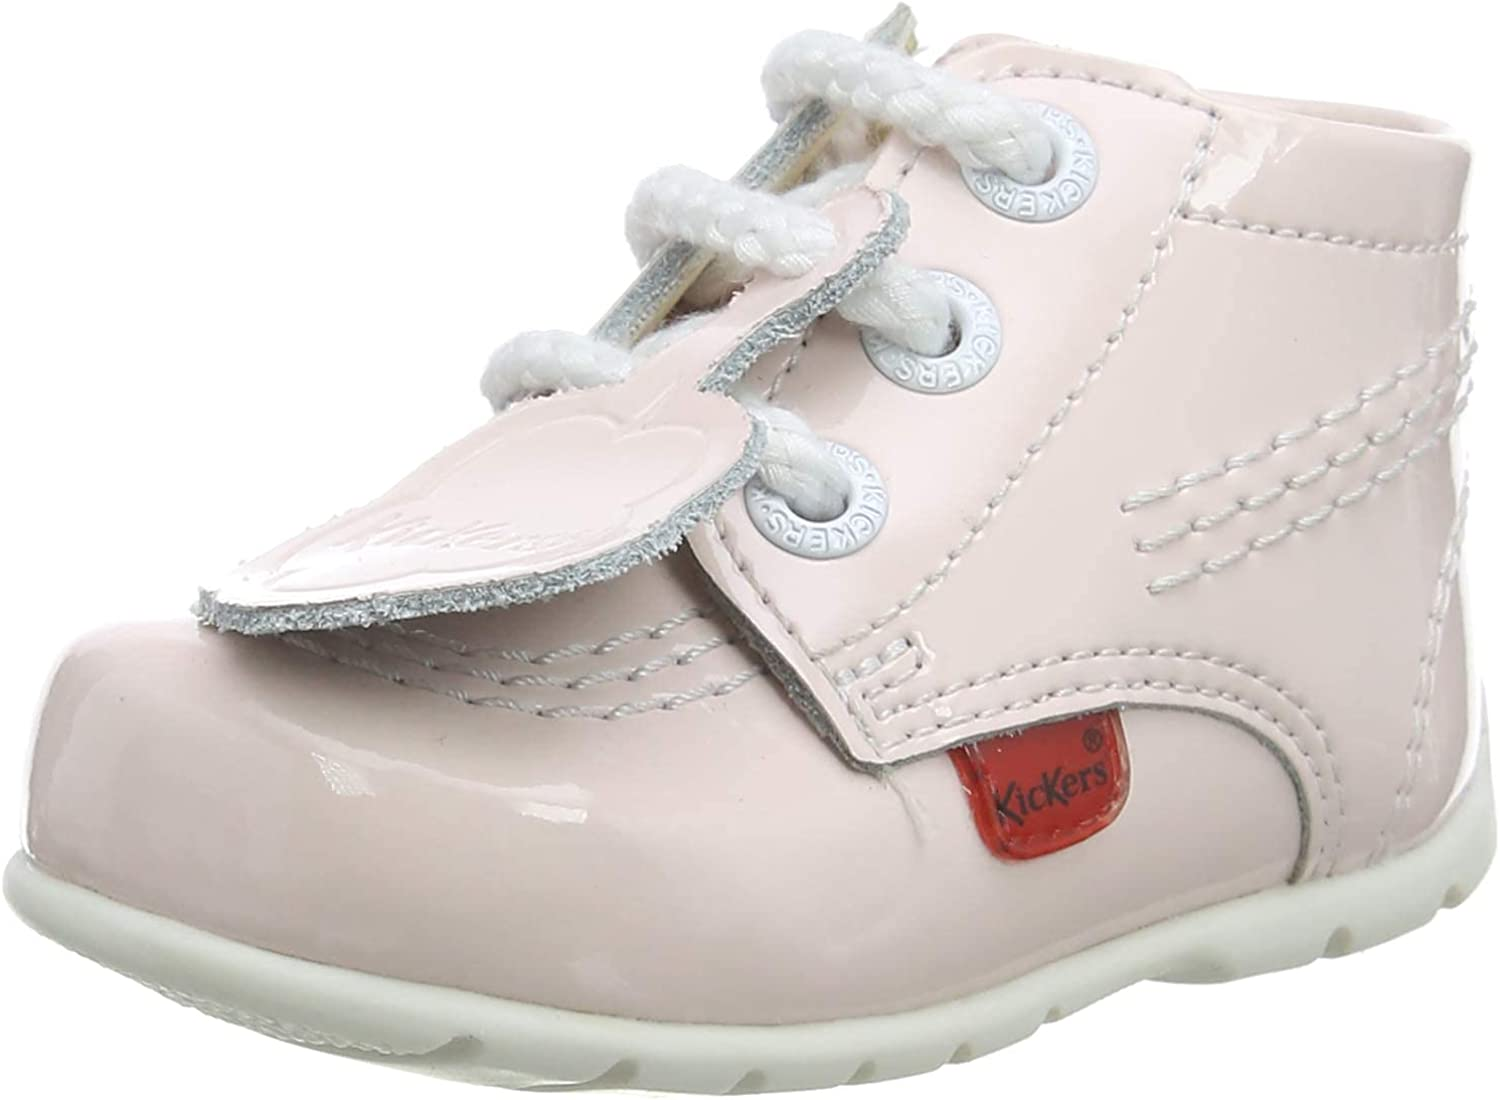 Kickers Kick Hi B Light Pink service Shoes Leather Max 81% OFF First Walkers Baby